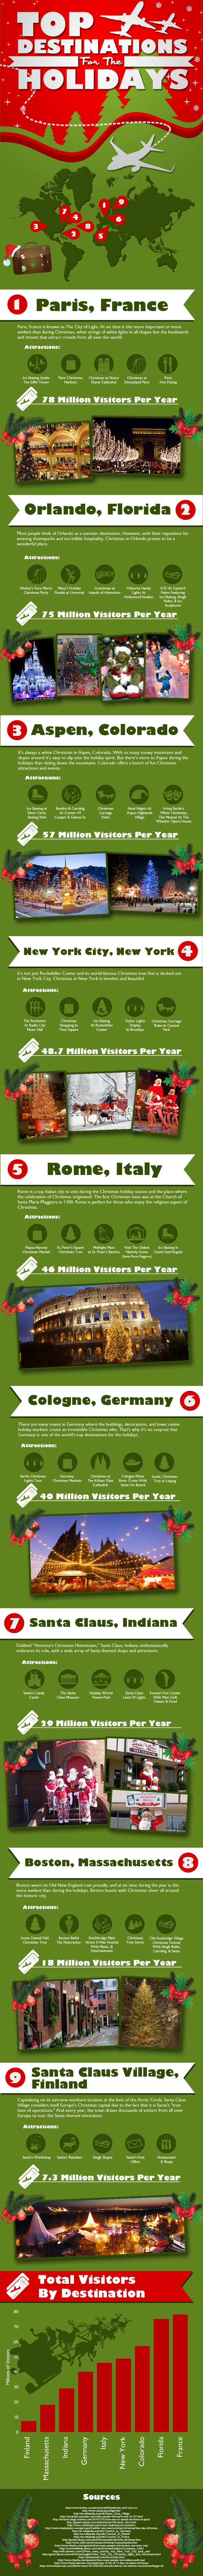 Top Destinations for the Holidays